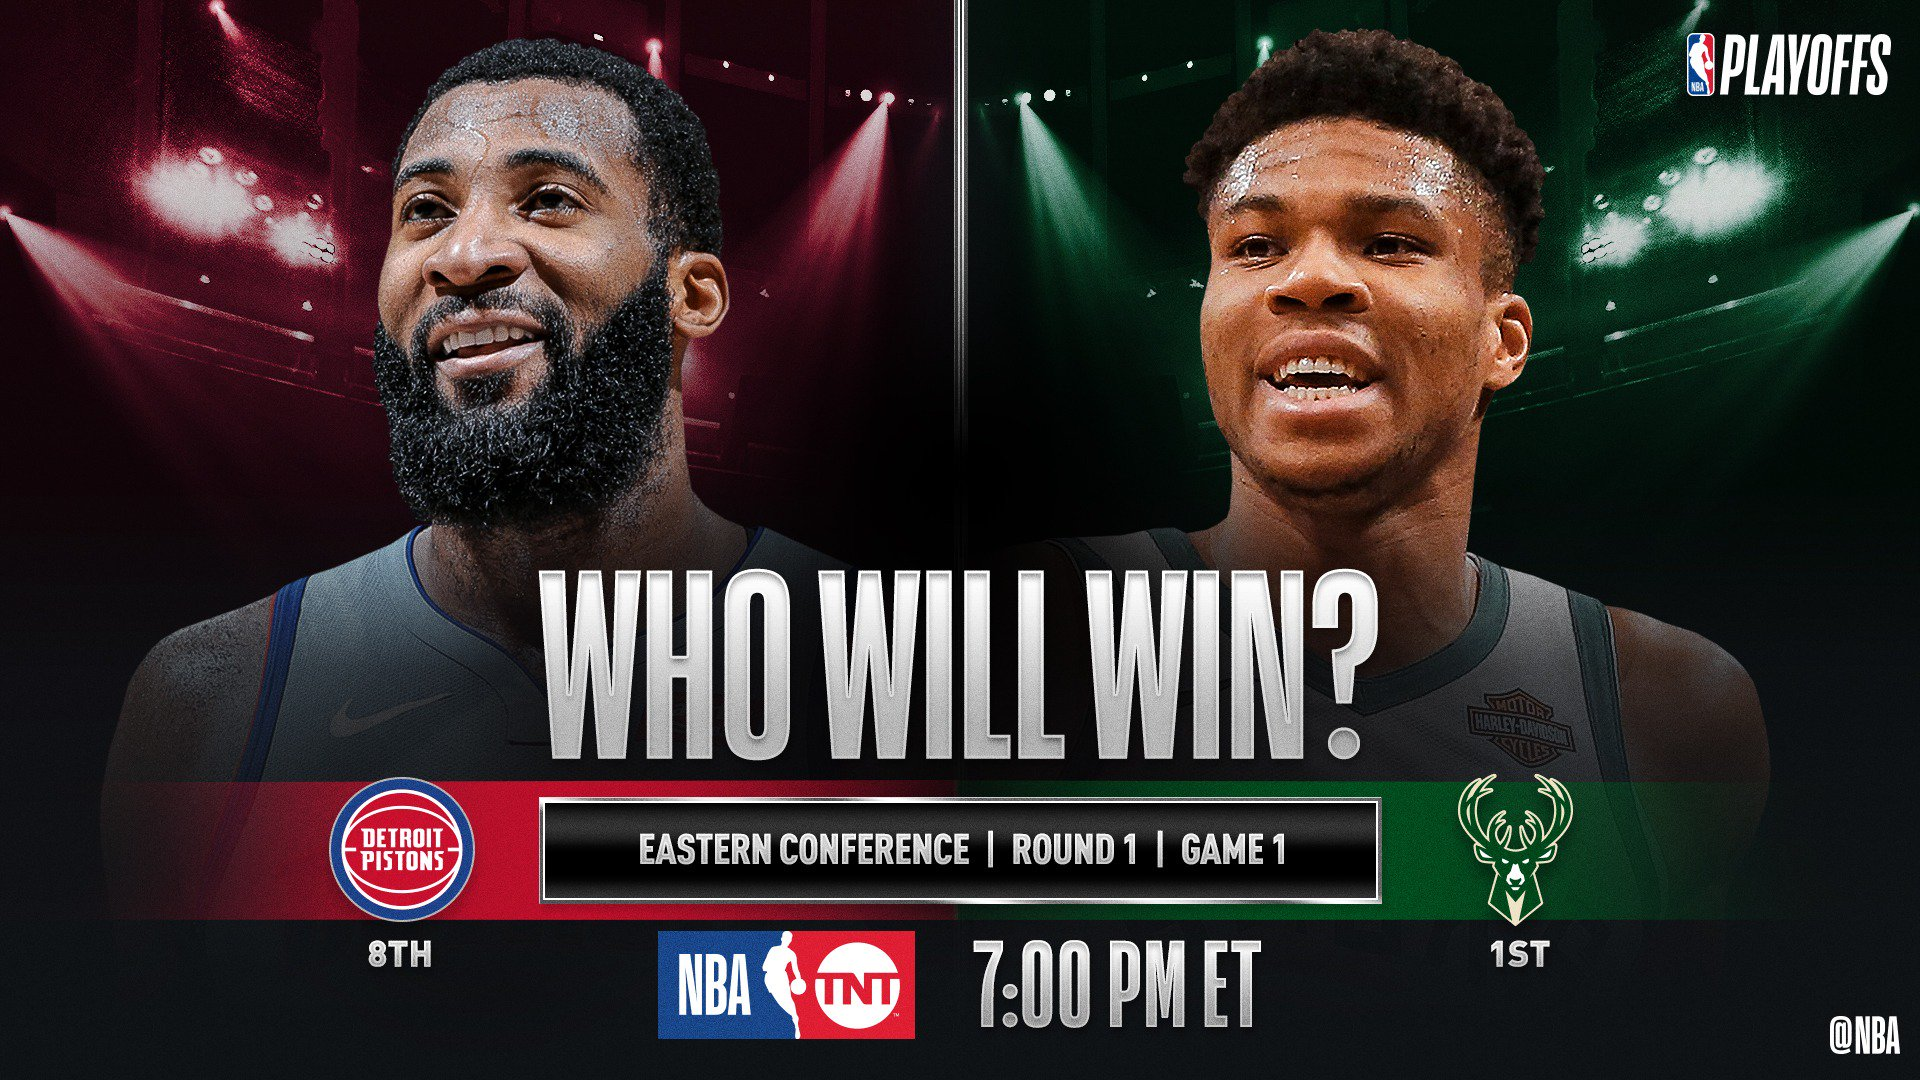 �� No. 8 in the East @DetroitPistons visit No. 1 @Bucks at 7pm/et for Game 1 (@NBAonTNT)! #NBAPlayoffs �� https://t.co/GfCDQ7JdFn